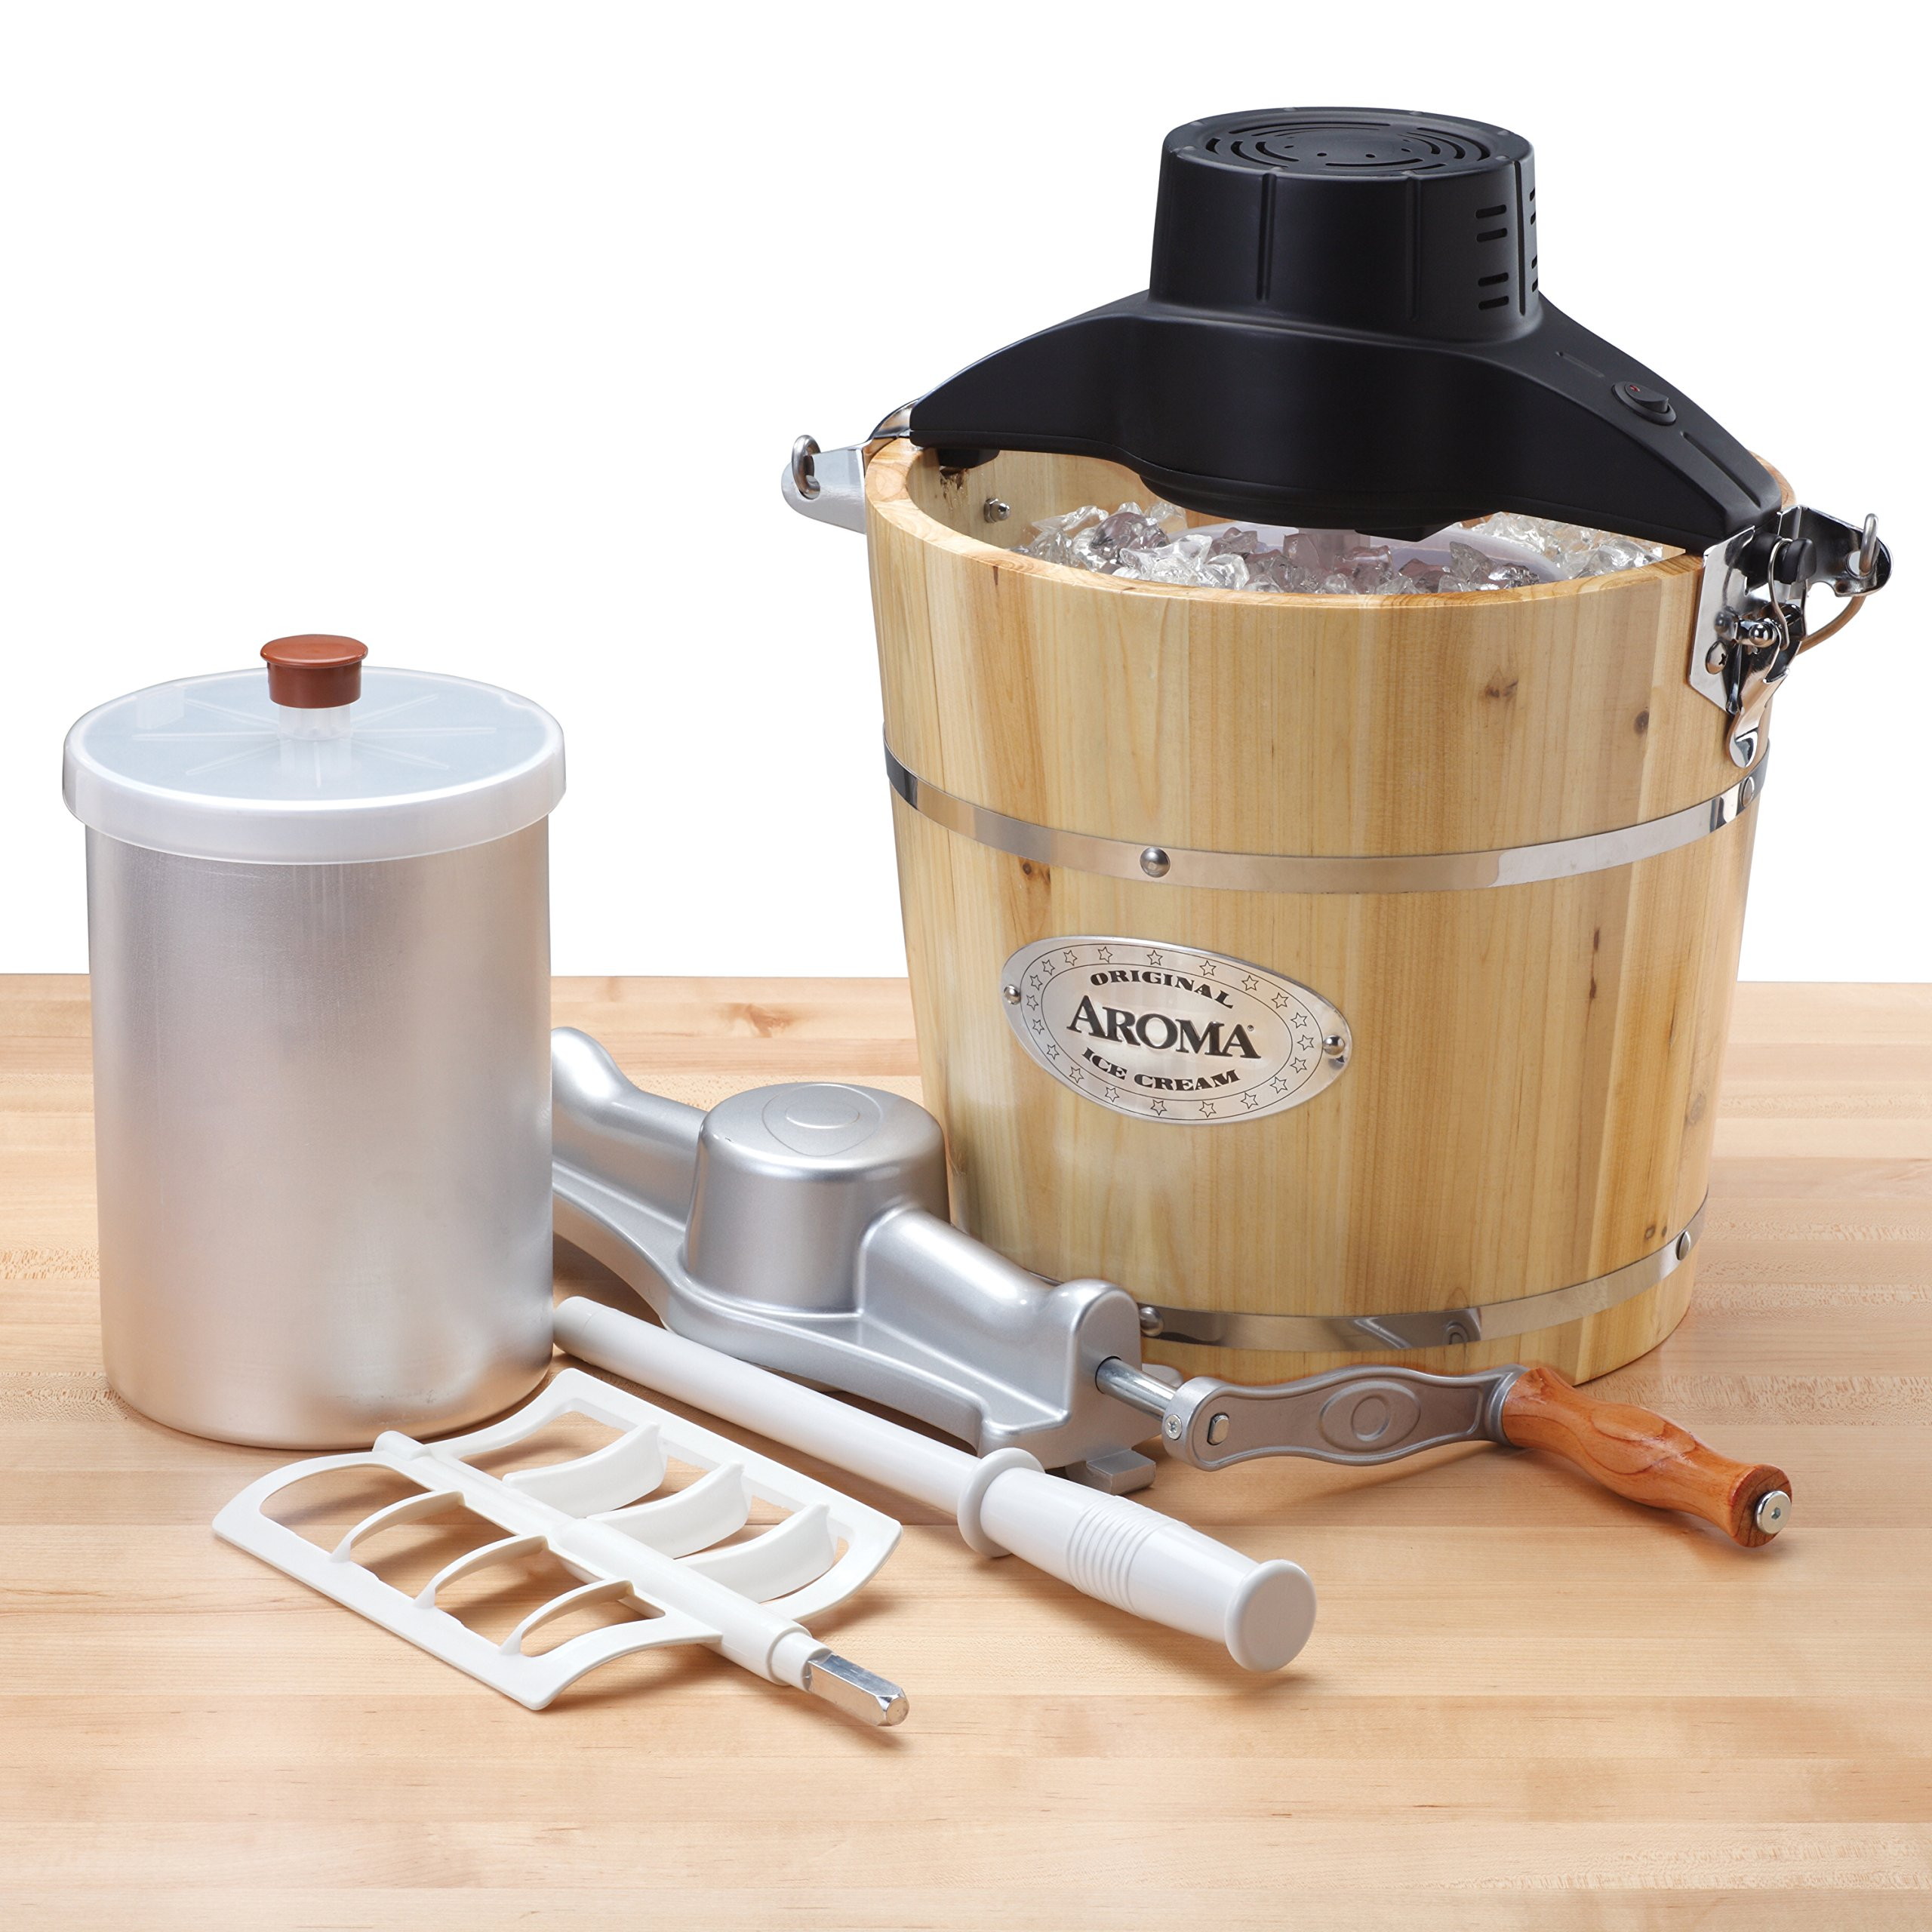 Aroma Housewares 6-Quart Wood-Barrel Ice-Cream Maker, Natural by Aroma Housewares (Image #1)